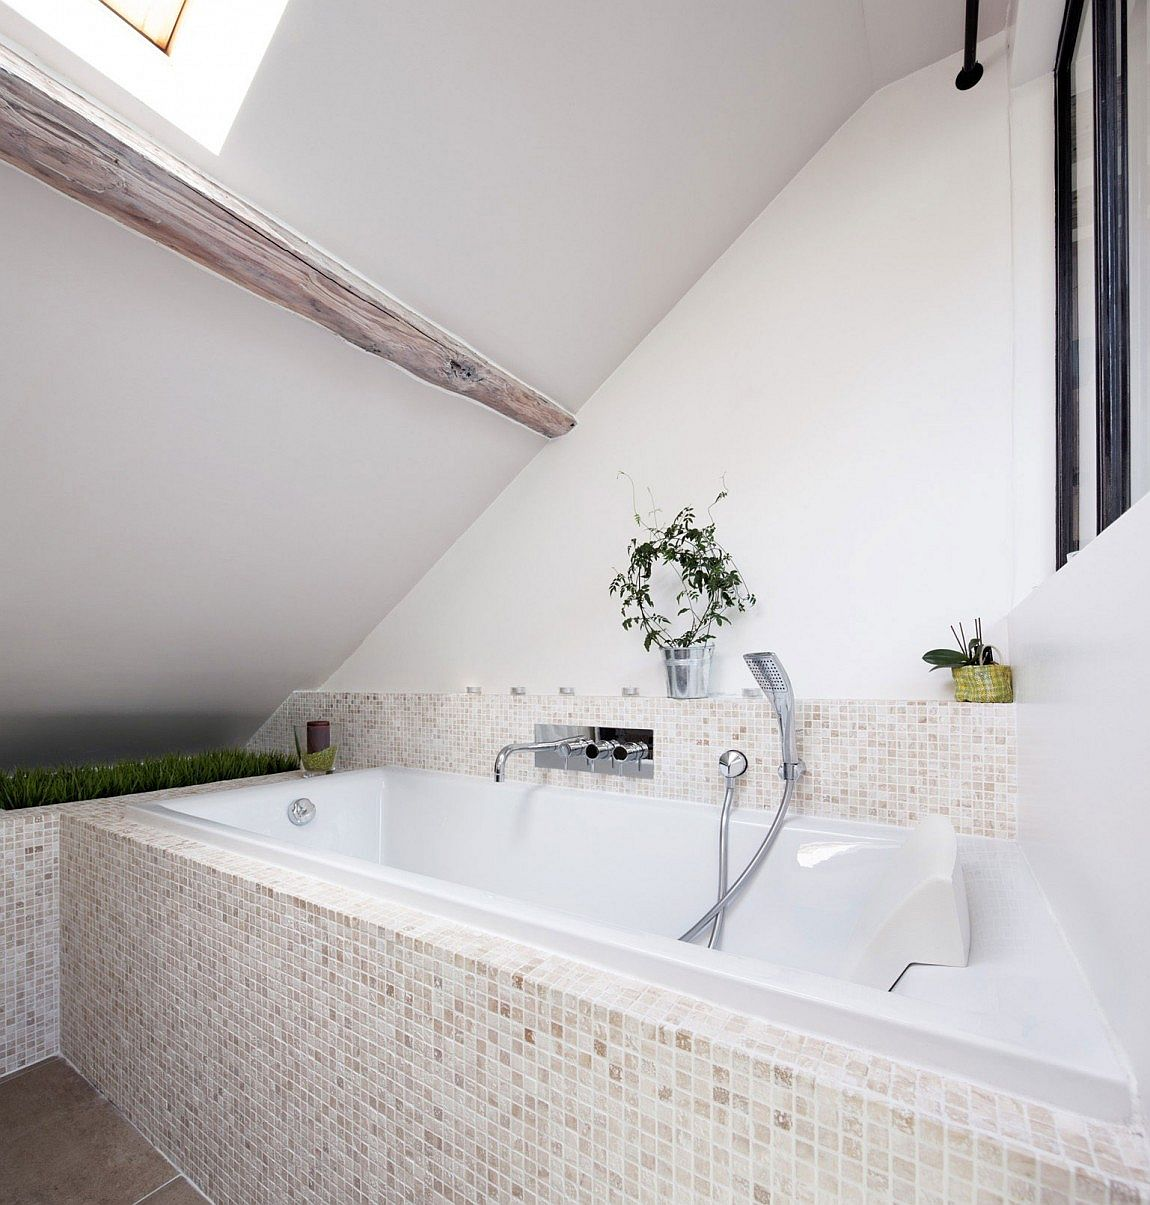 Hint of greenery inside the small bathroom